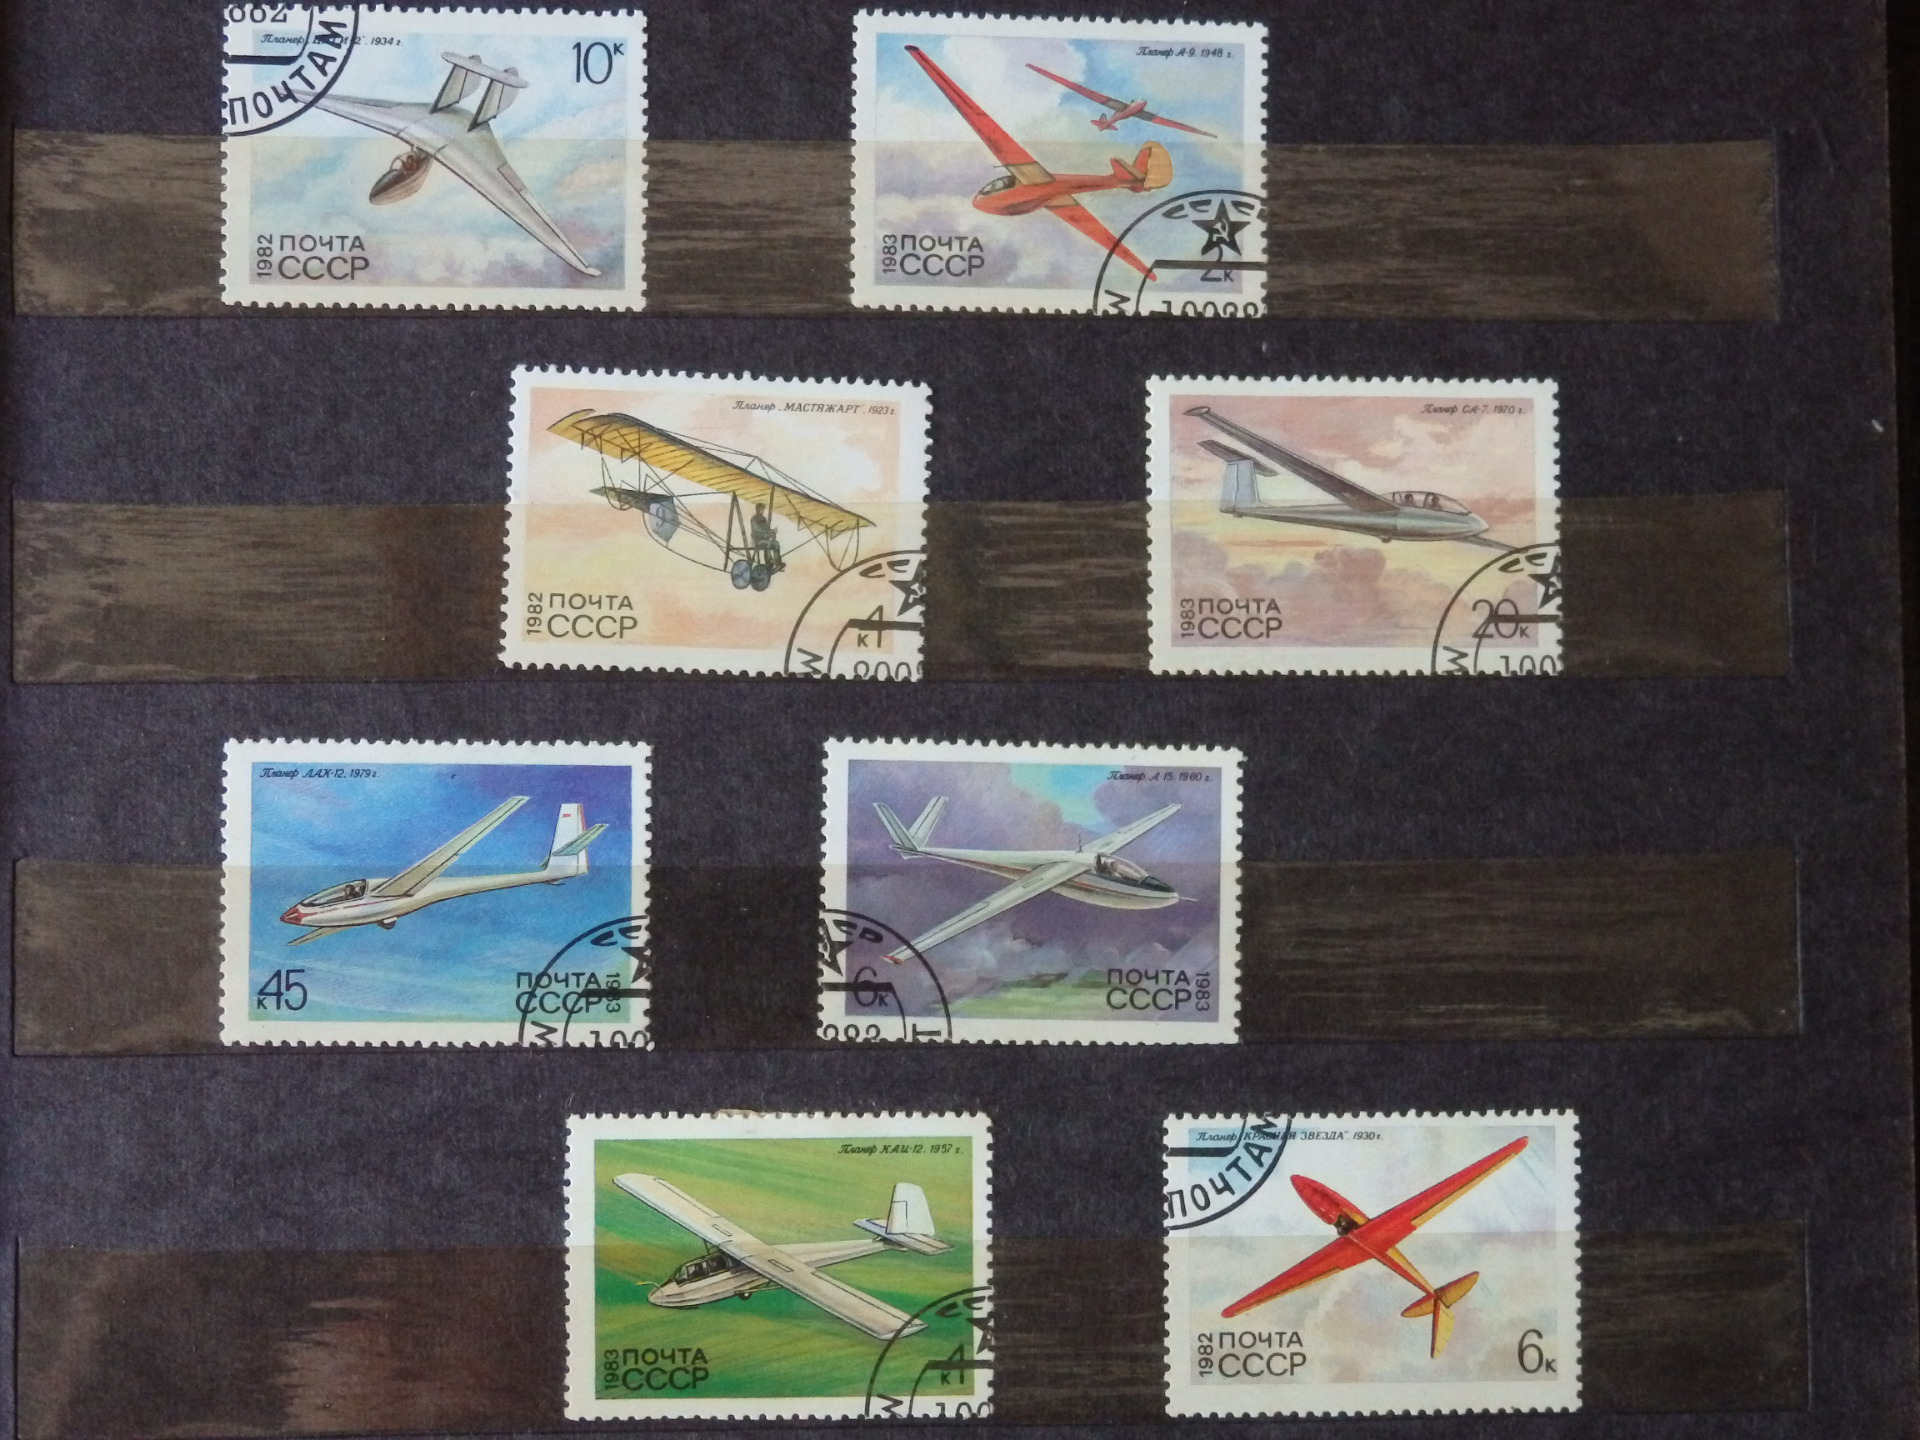 Stamp collection | Hobby Keeper Articles